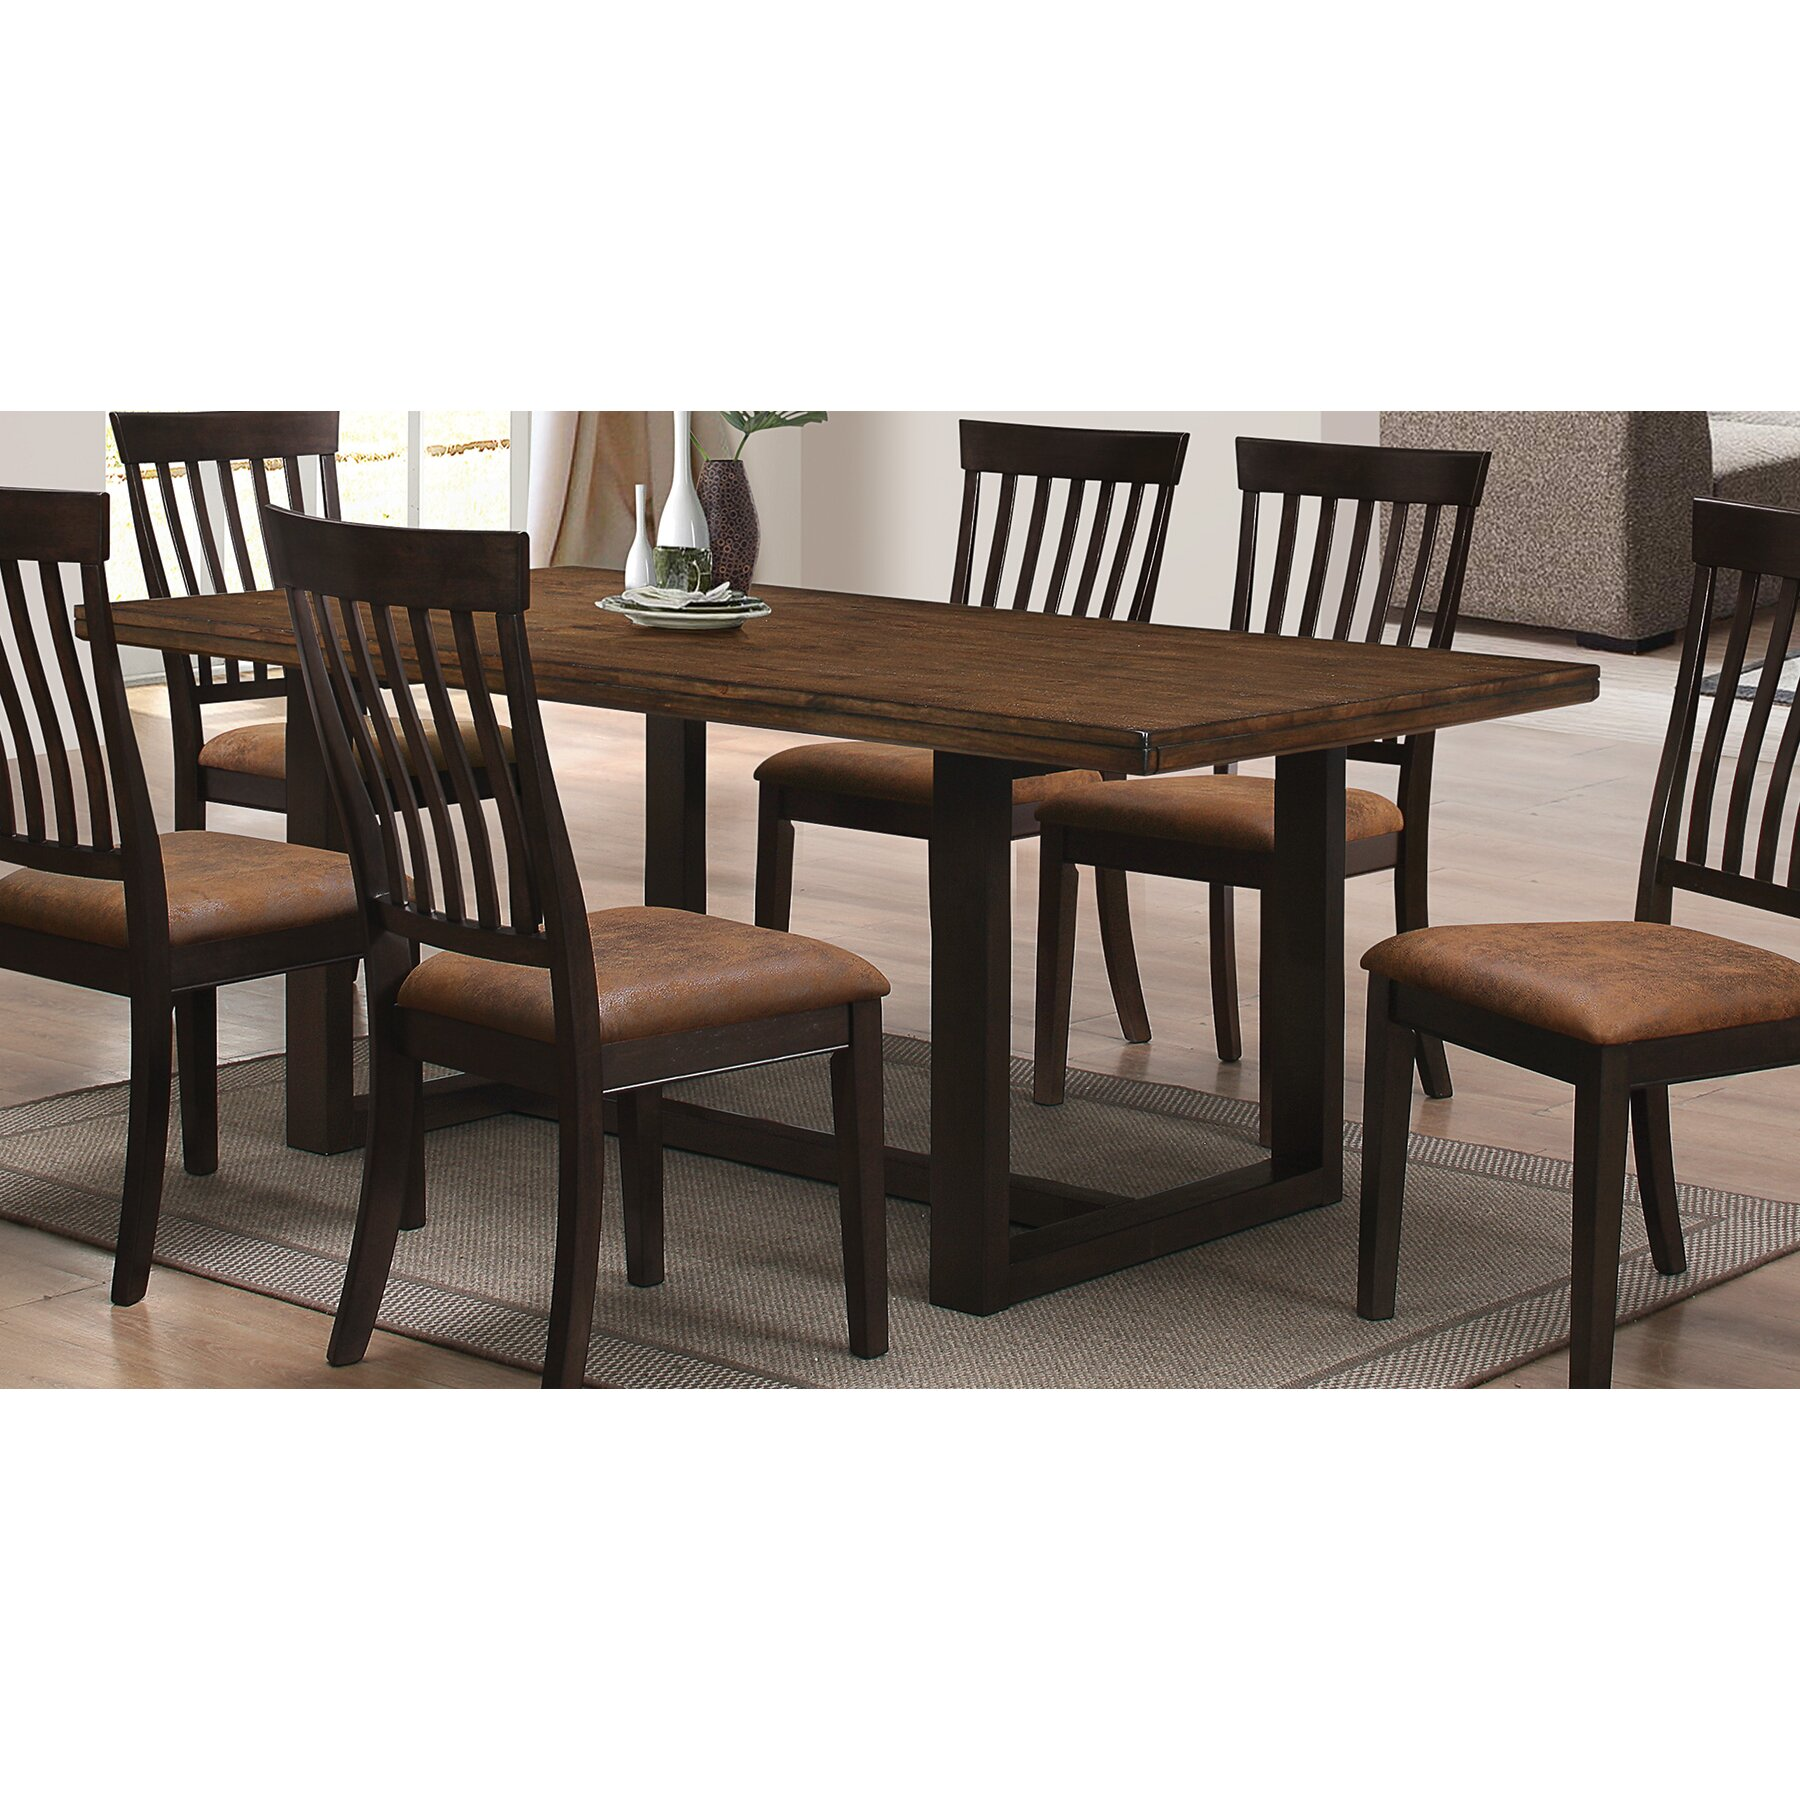 Wildon home river dining table reviews wayfair for Wildon home dining